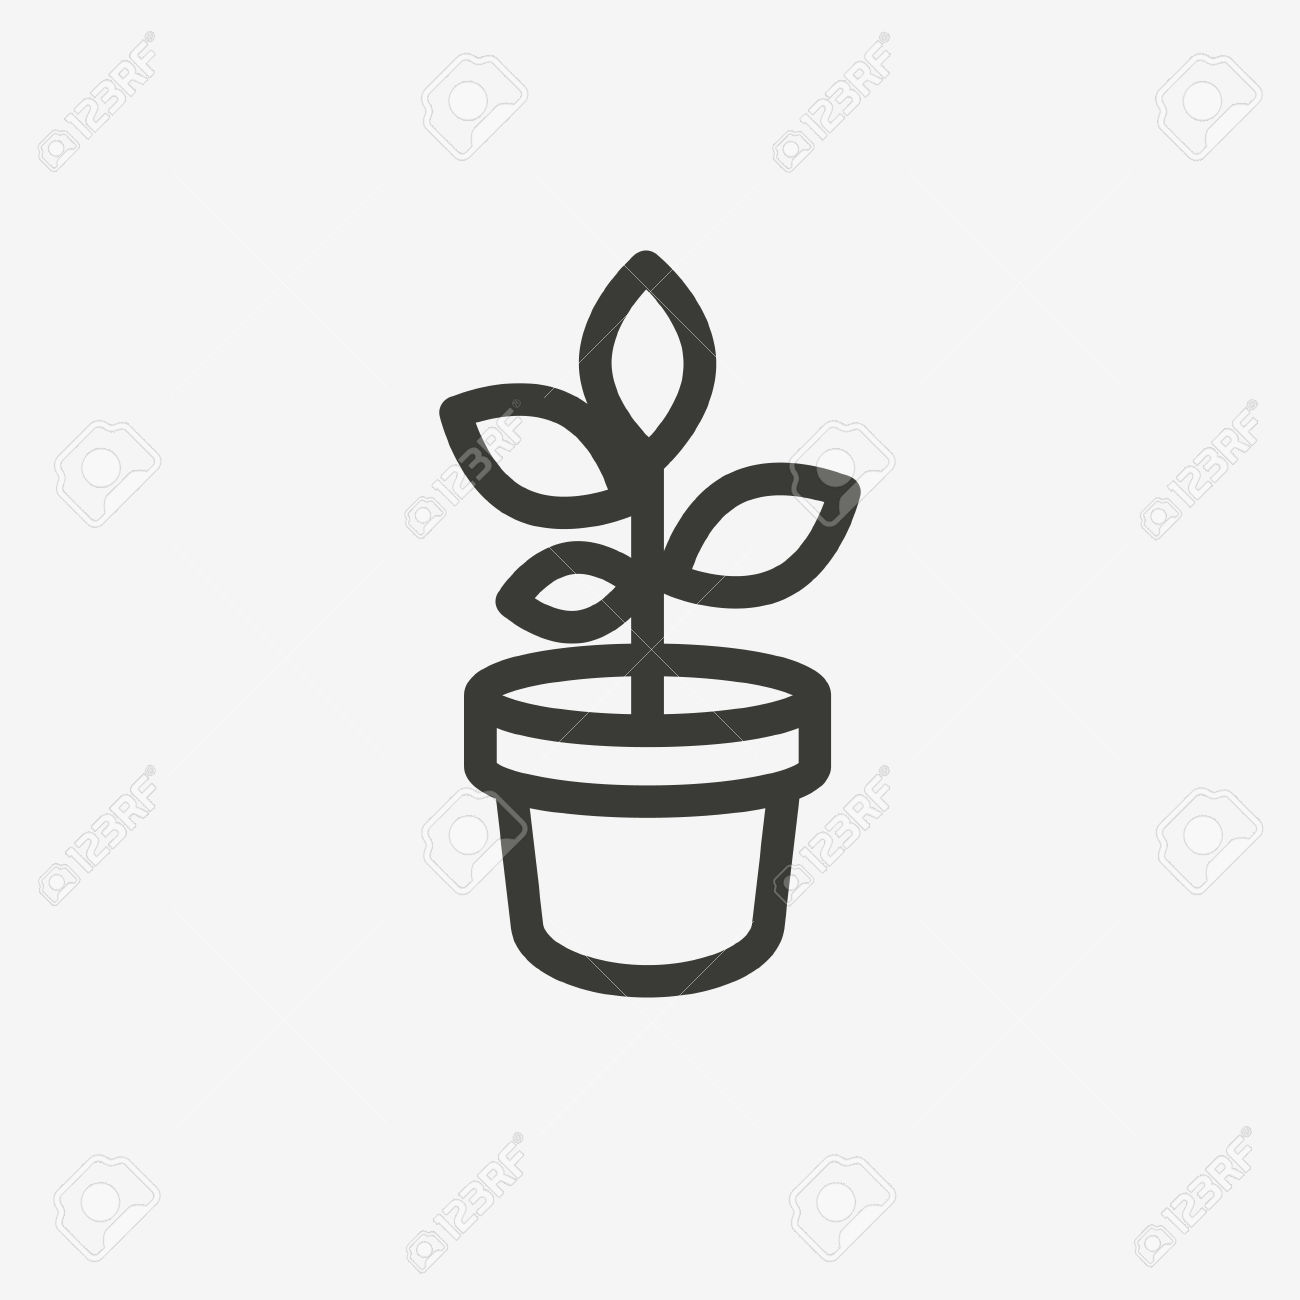 Potted Plant Icon Of Brown Outline For Illustration Royalty Free.